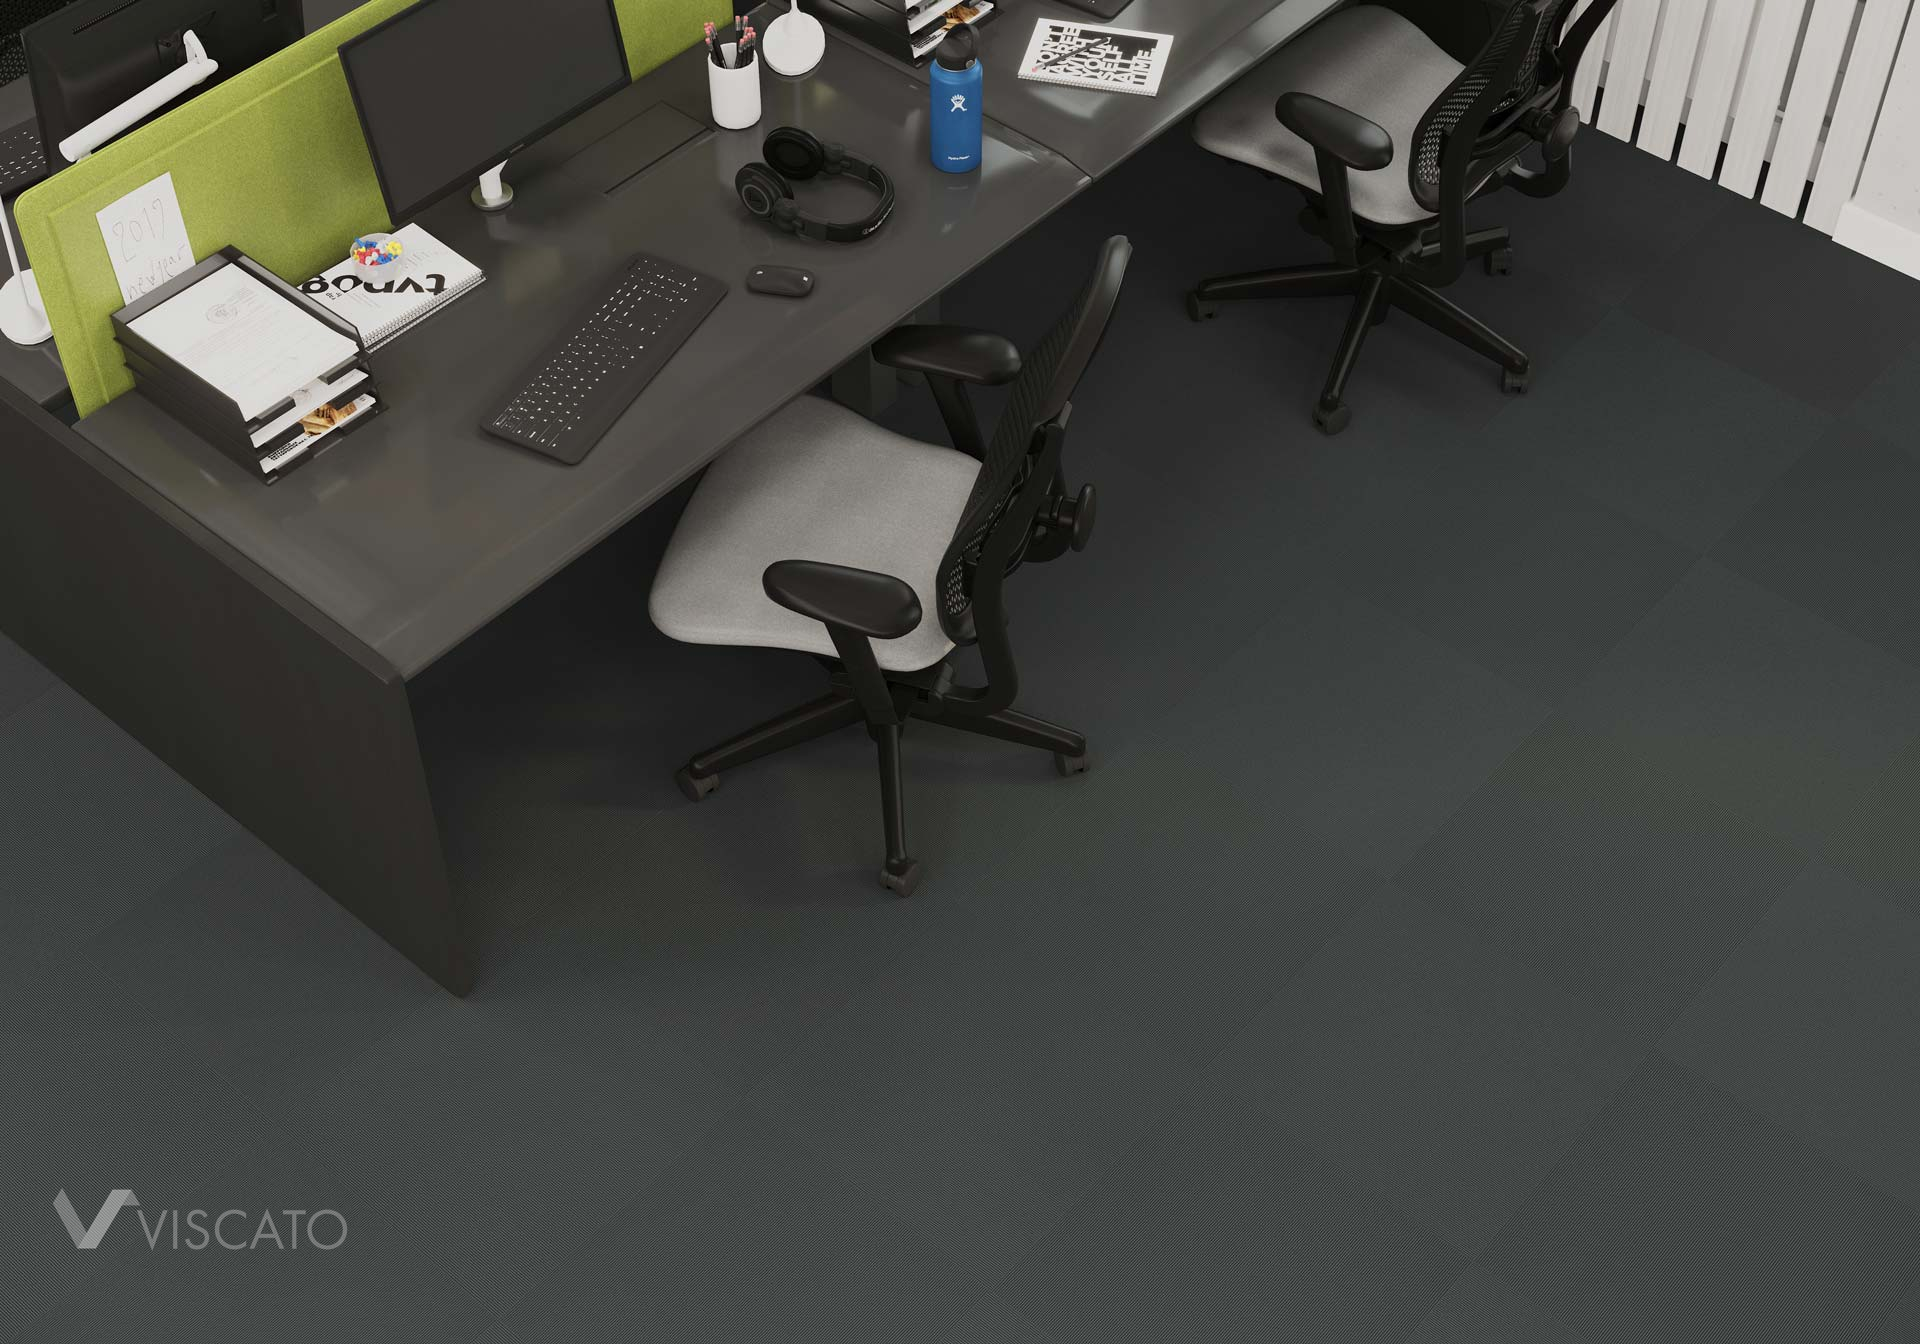 carpet visualization in office interior, 3Ds max